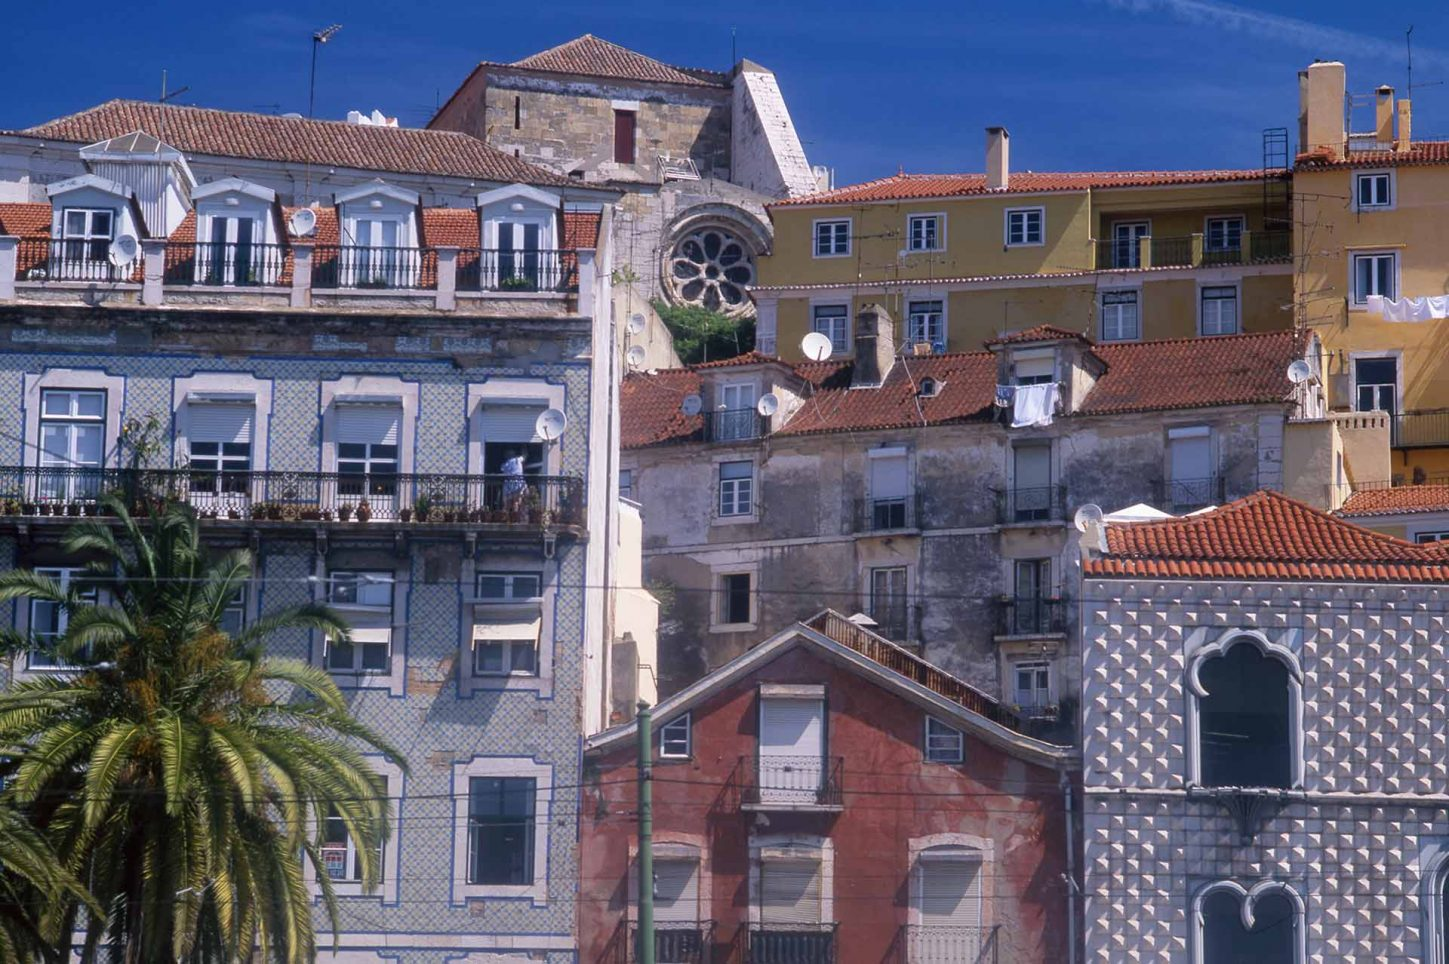 Image of houses in the Alfama district, Lisbon